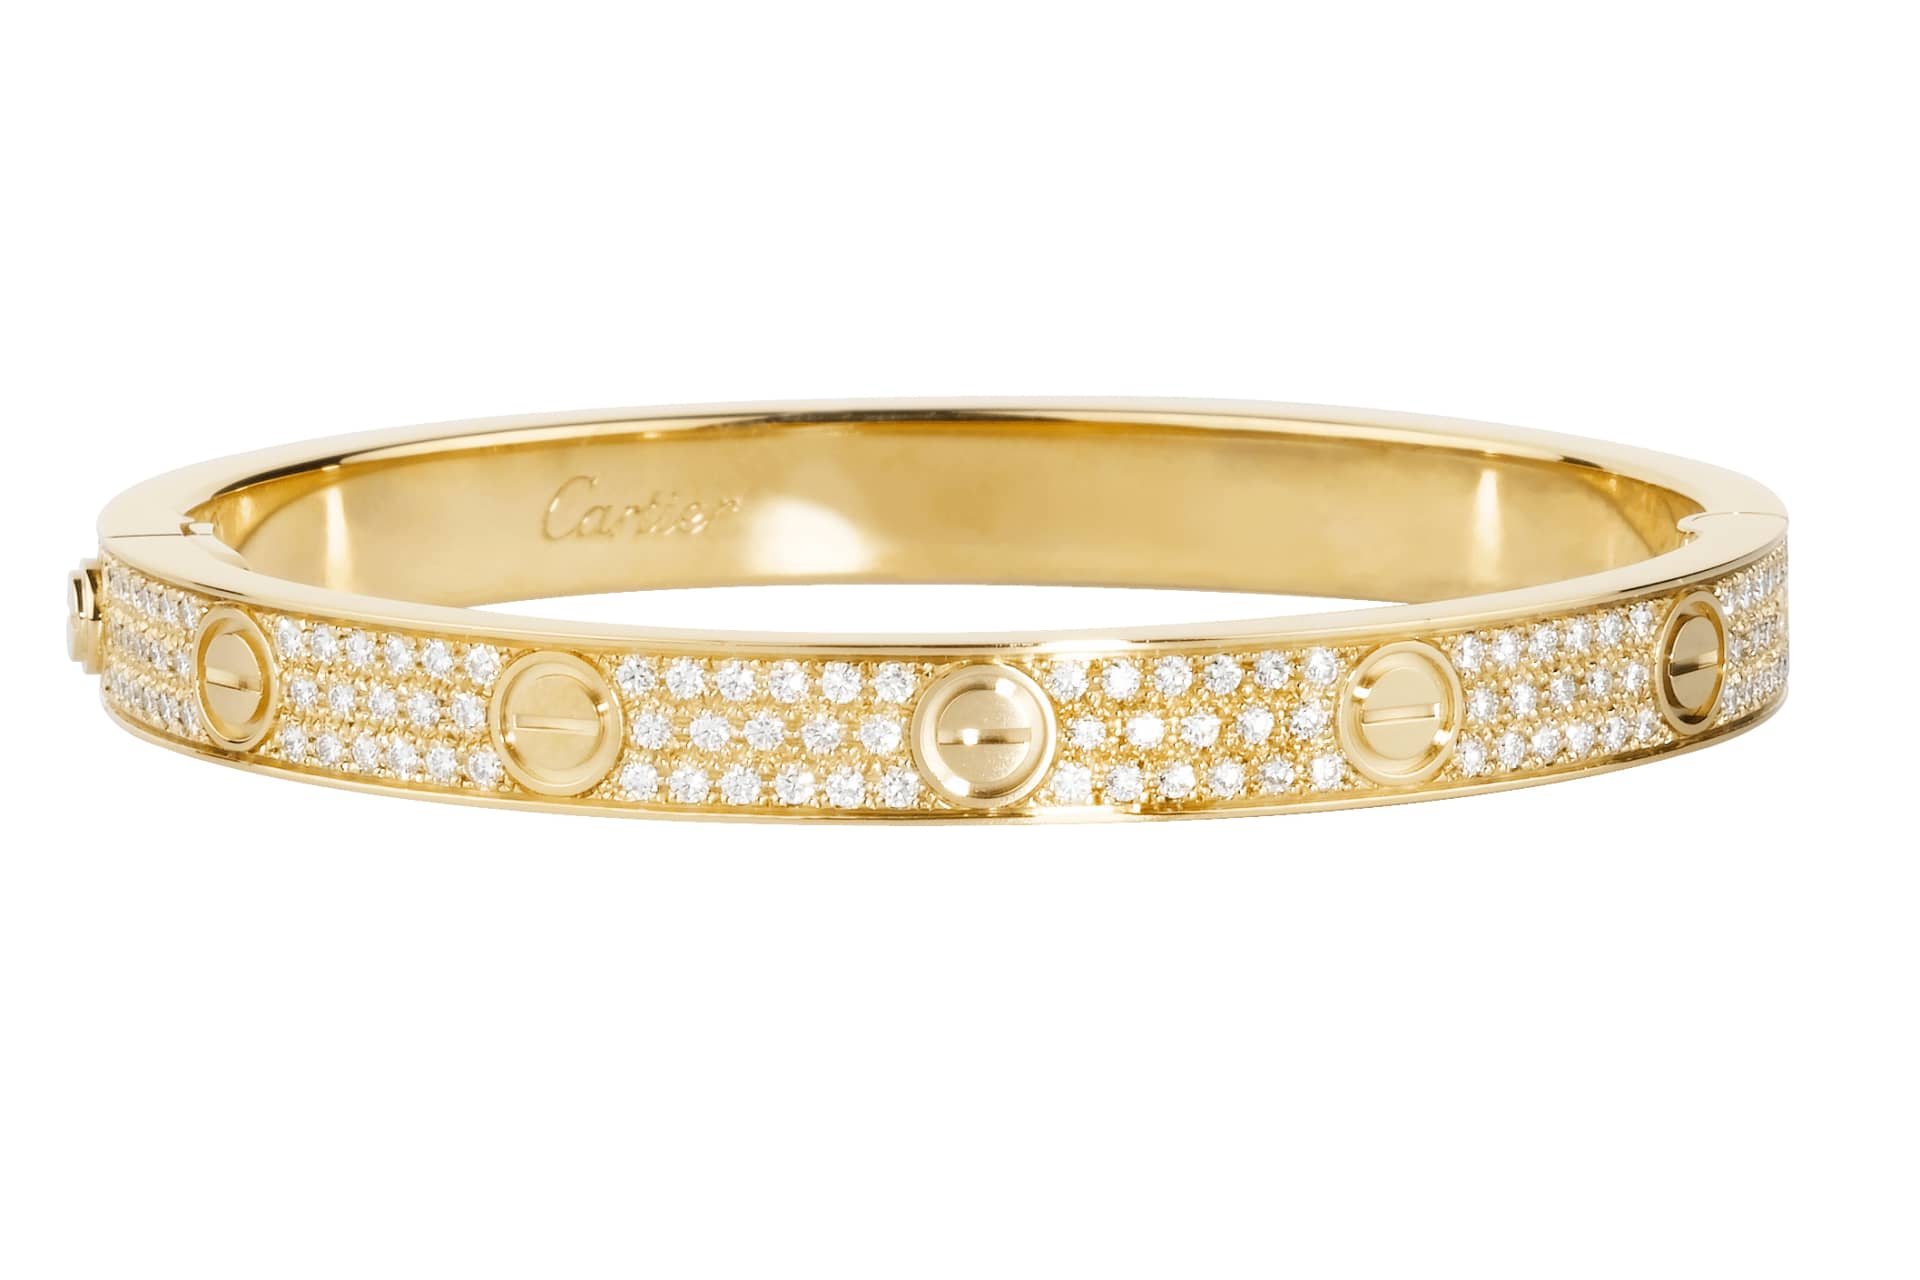 Love Bracelet i guld med diamanter. © Cartier